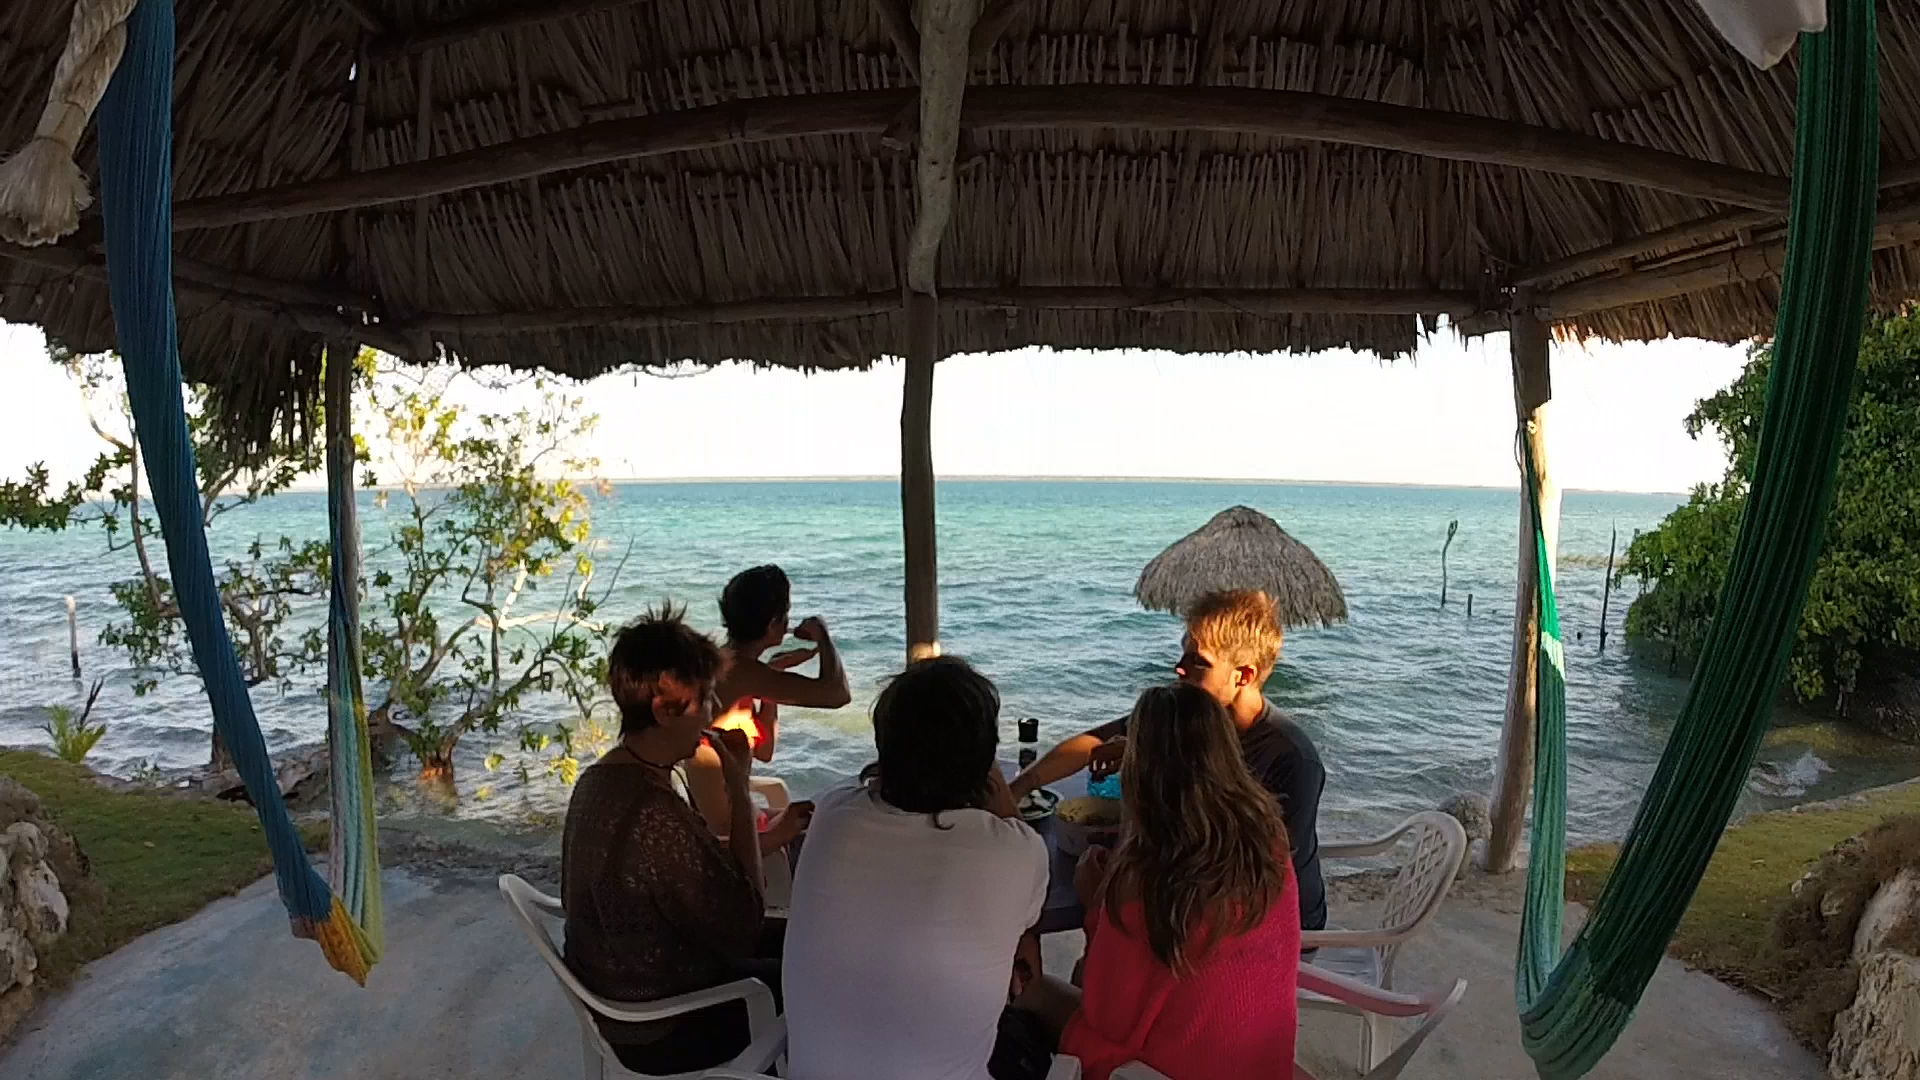 Dinner and a view